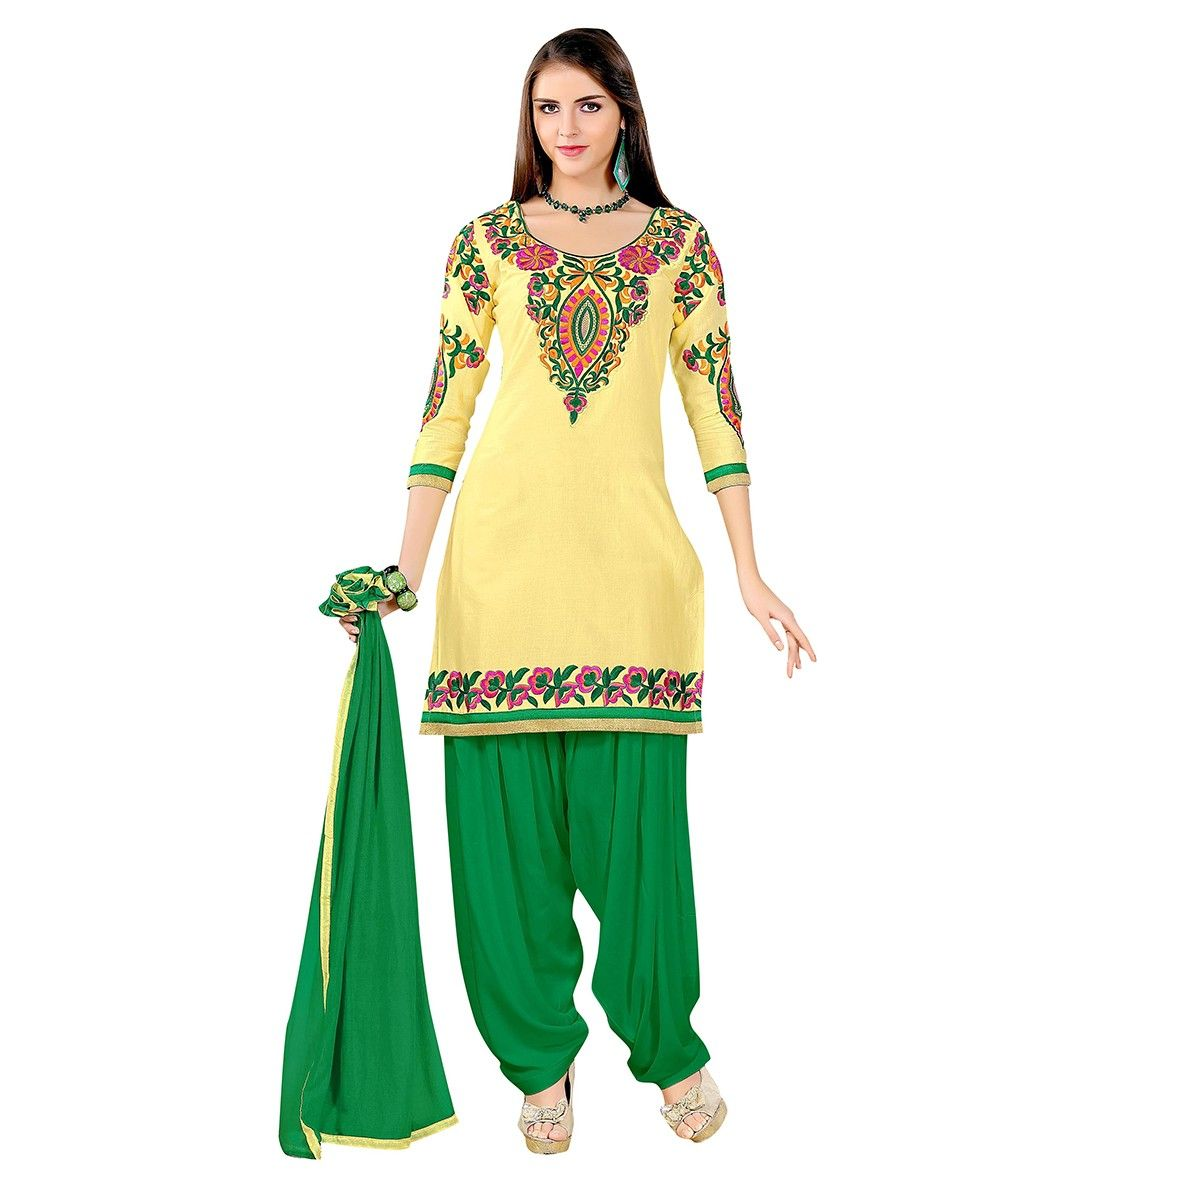 82dcafc4841 Cotton Patch Work Yellow Semi Stitched Patiala Suit - 10002 ...